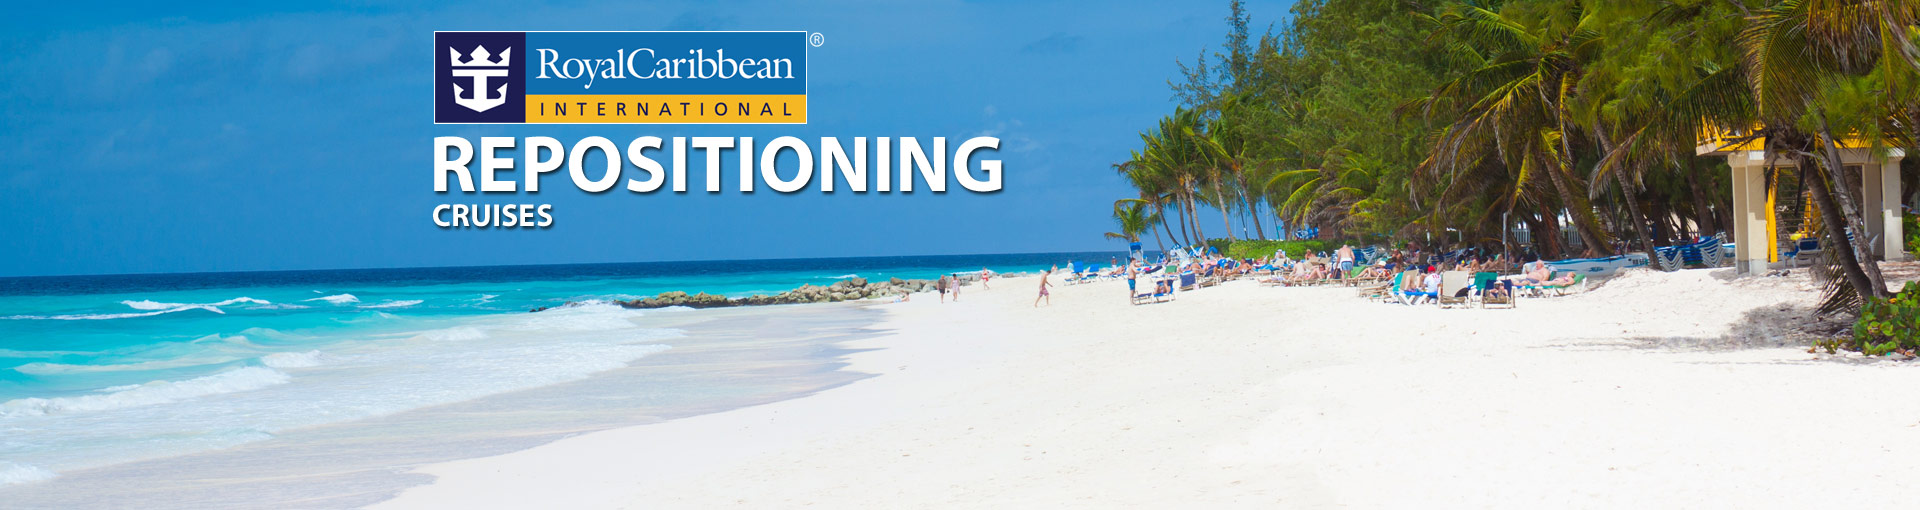 Royal Caribbean International Repositioning Cruise